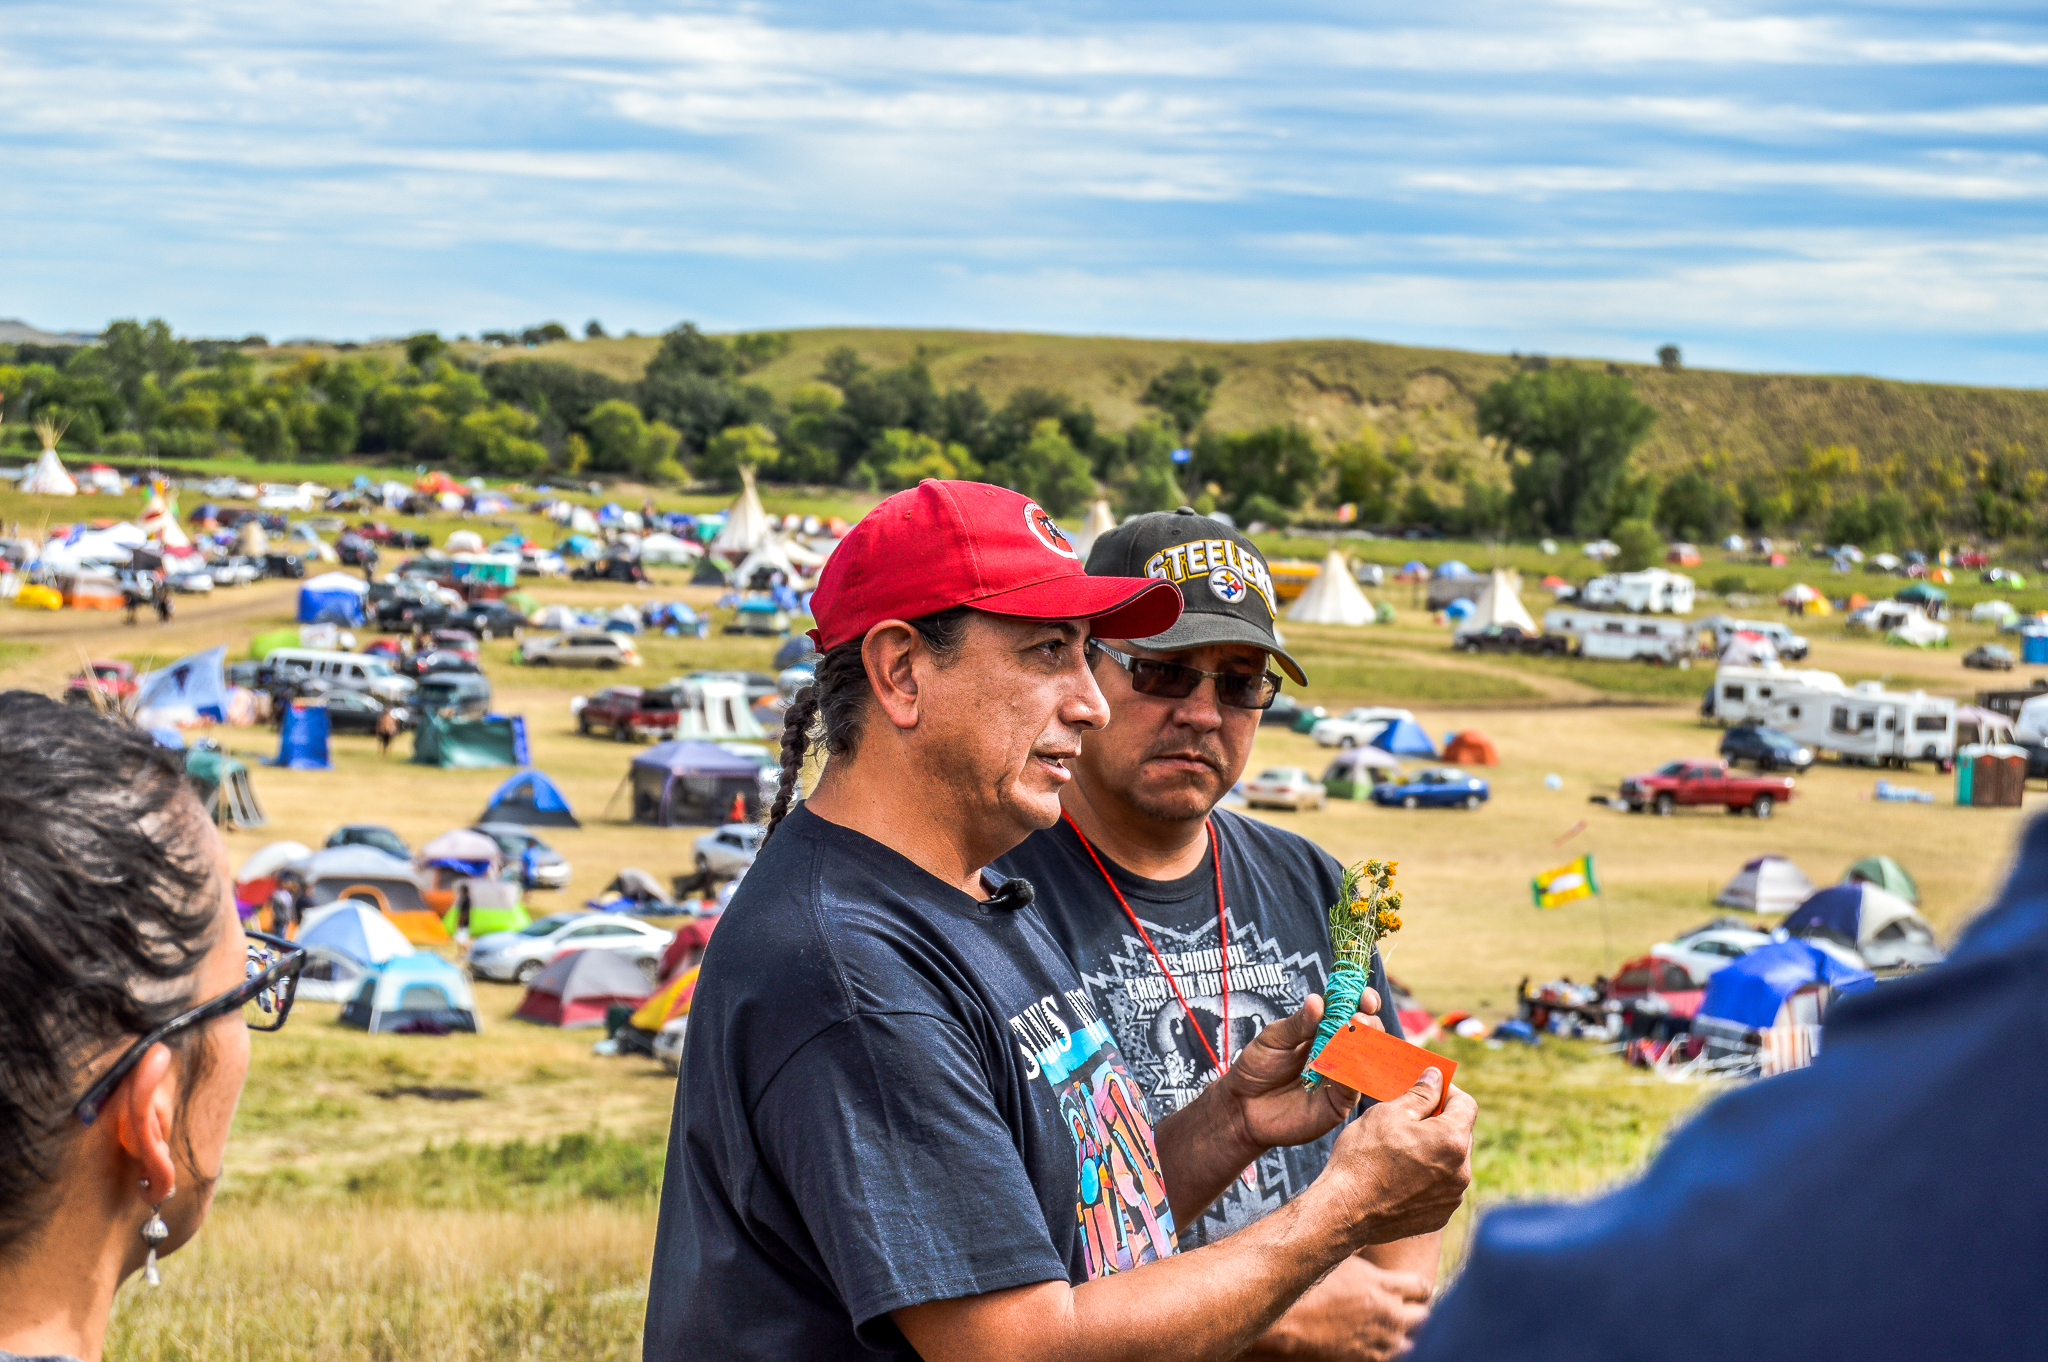 Standing Rock Sioux Chairman Dave Archambault II talking with reporters on 8 Sept 2016. (Photo by Rob Wilson for Bold Alliance)